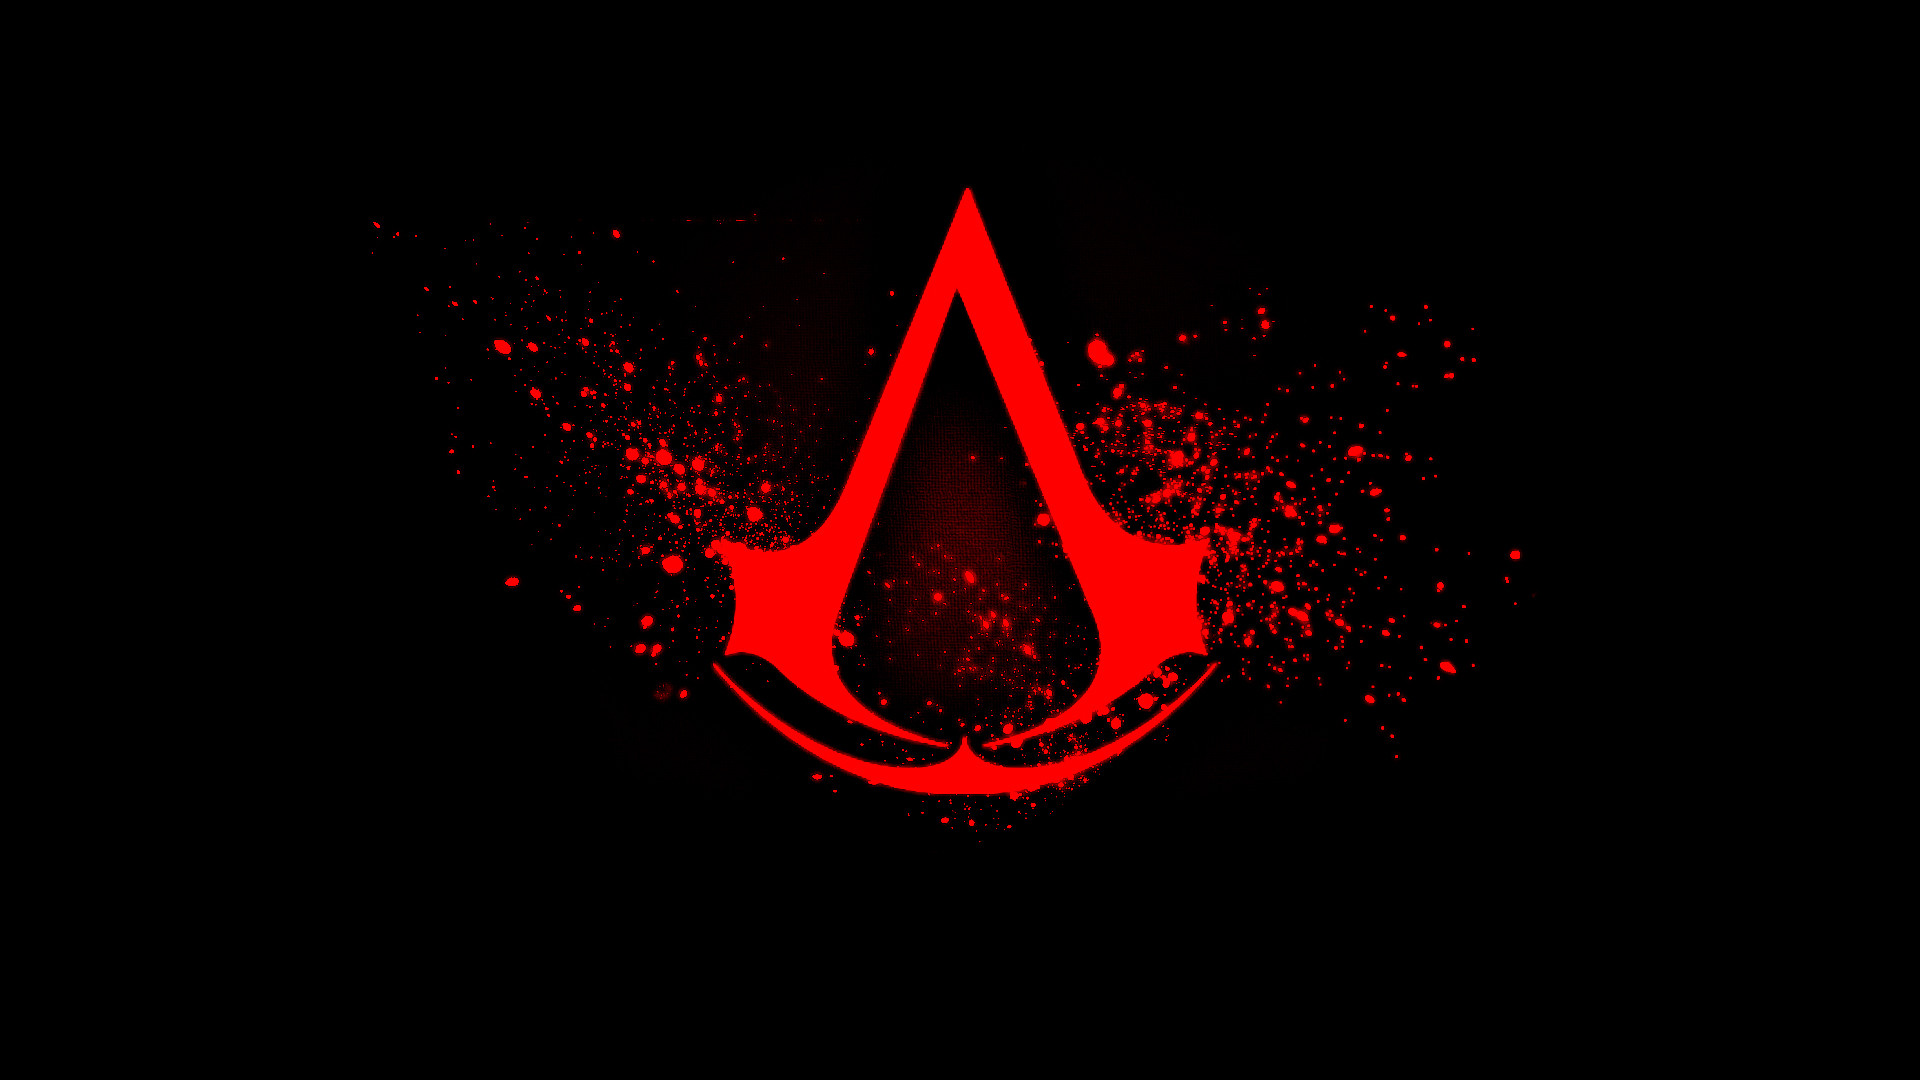 Assassin's Creed Wallpapers, Pictures, Images